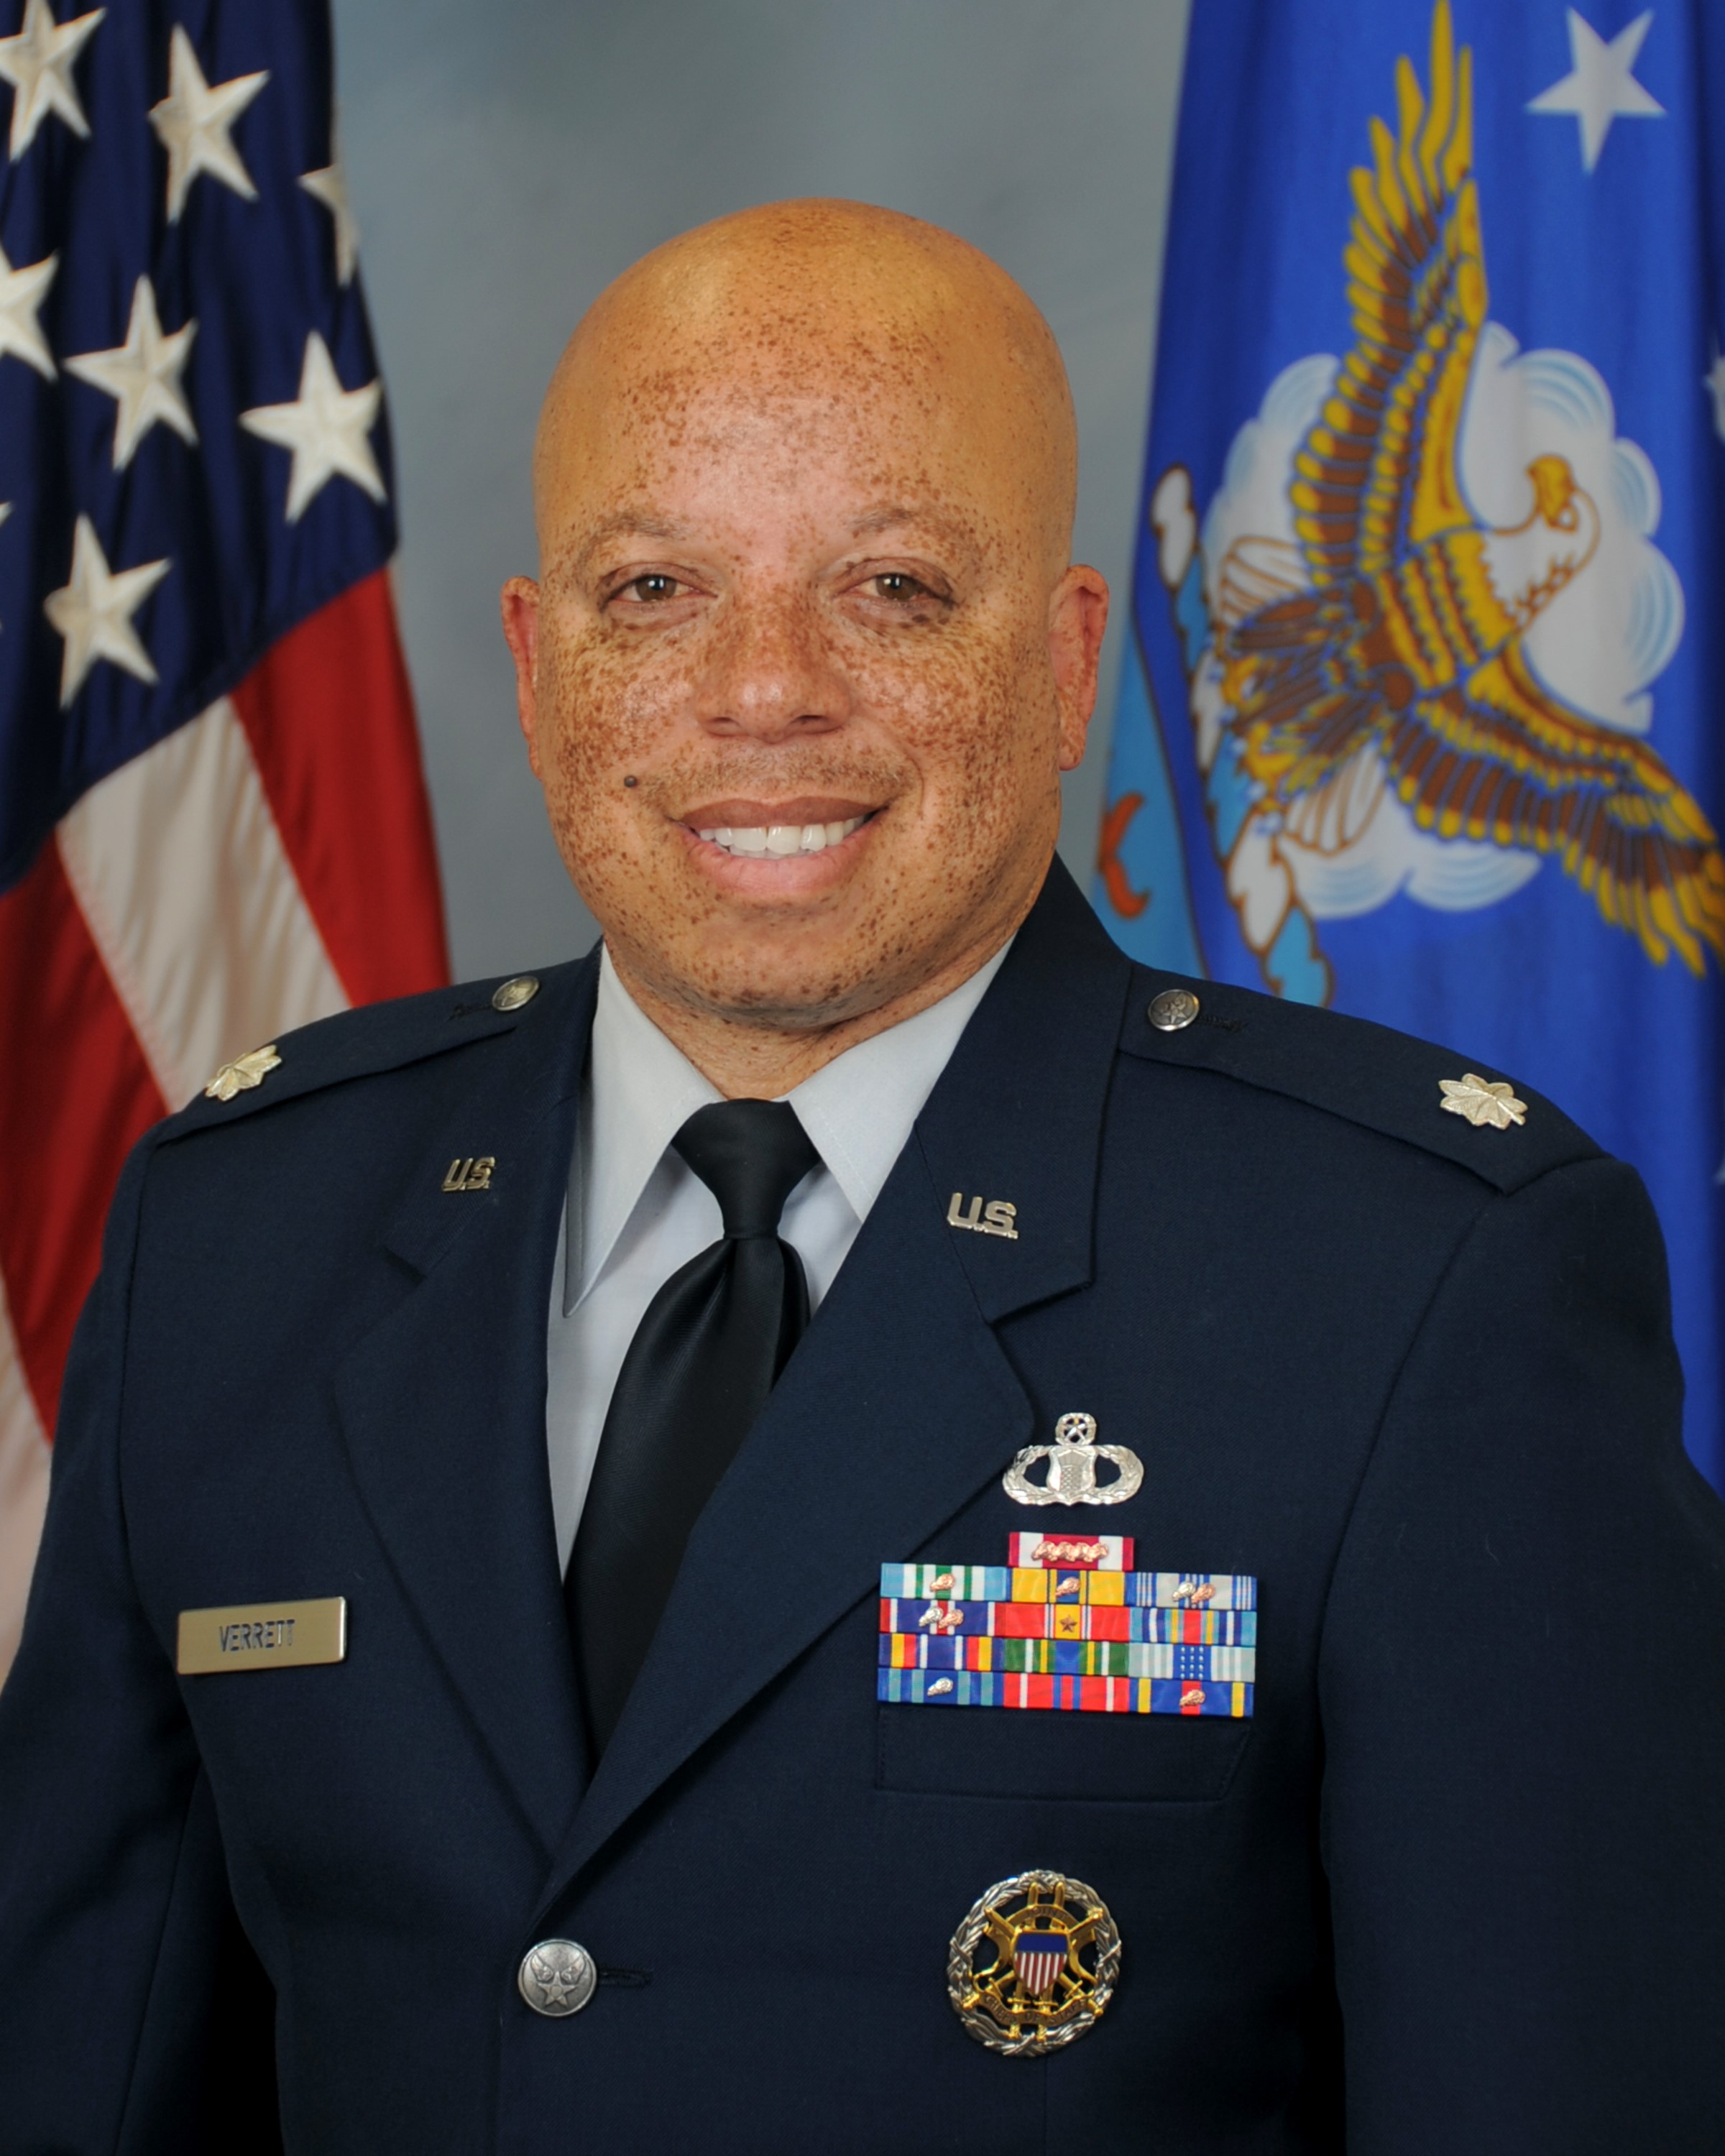 A fired squadron commander was reassigned to the Pentagon, but the Air Force won't say why